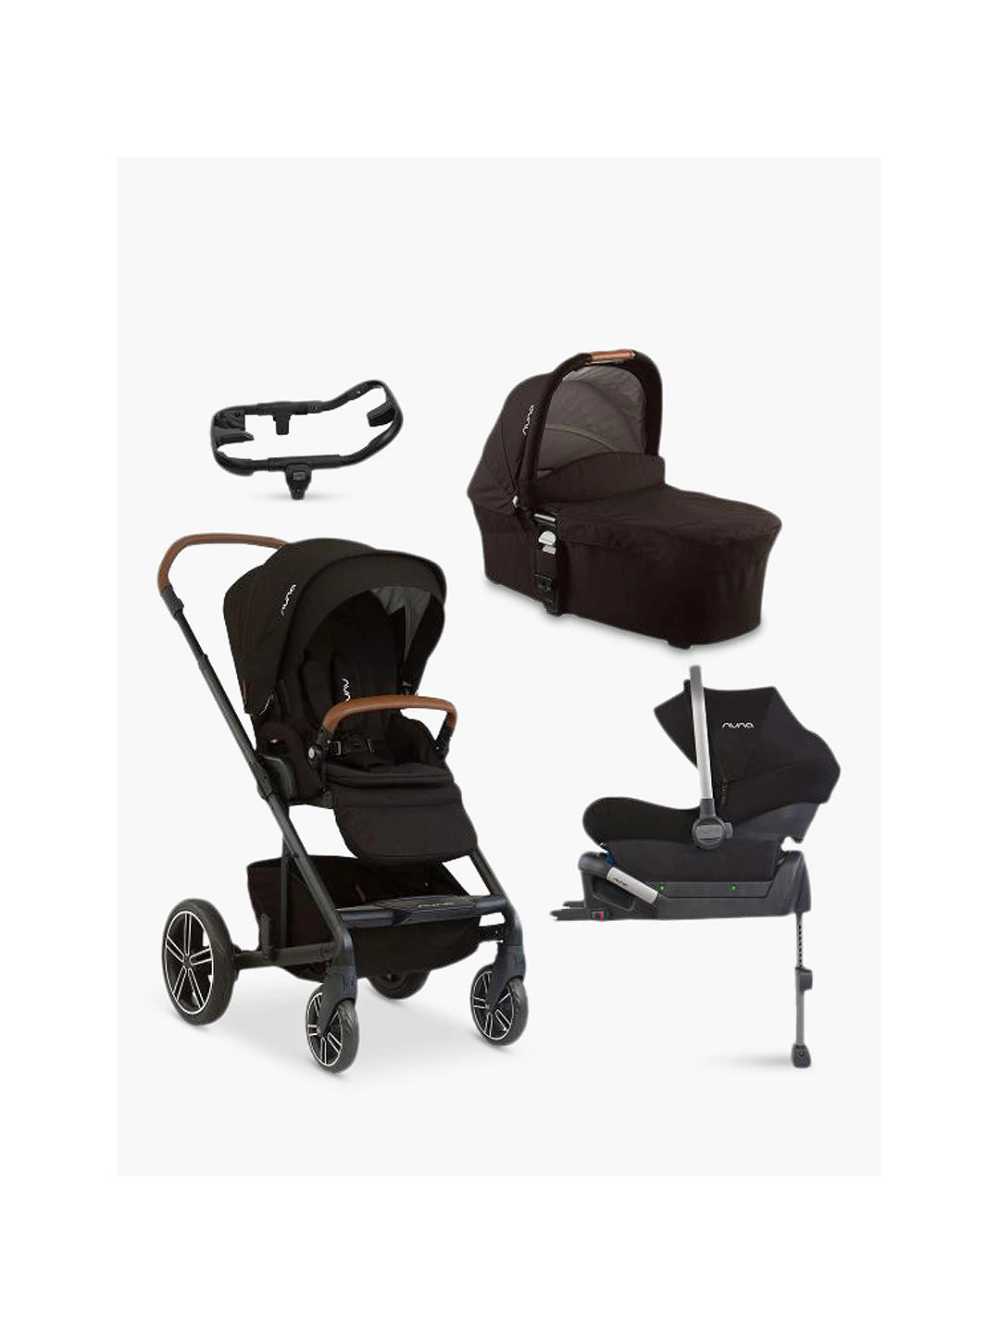 Babylist Store in 2020 Car seat and stroller, Travel